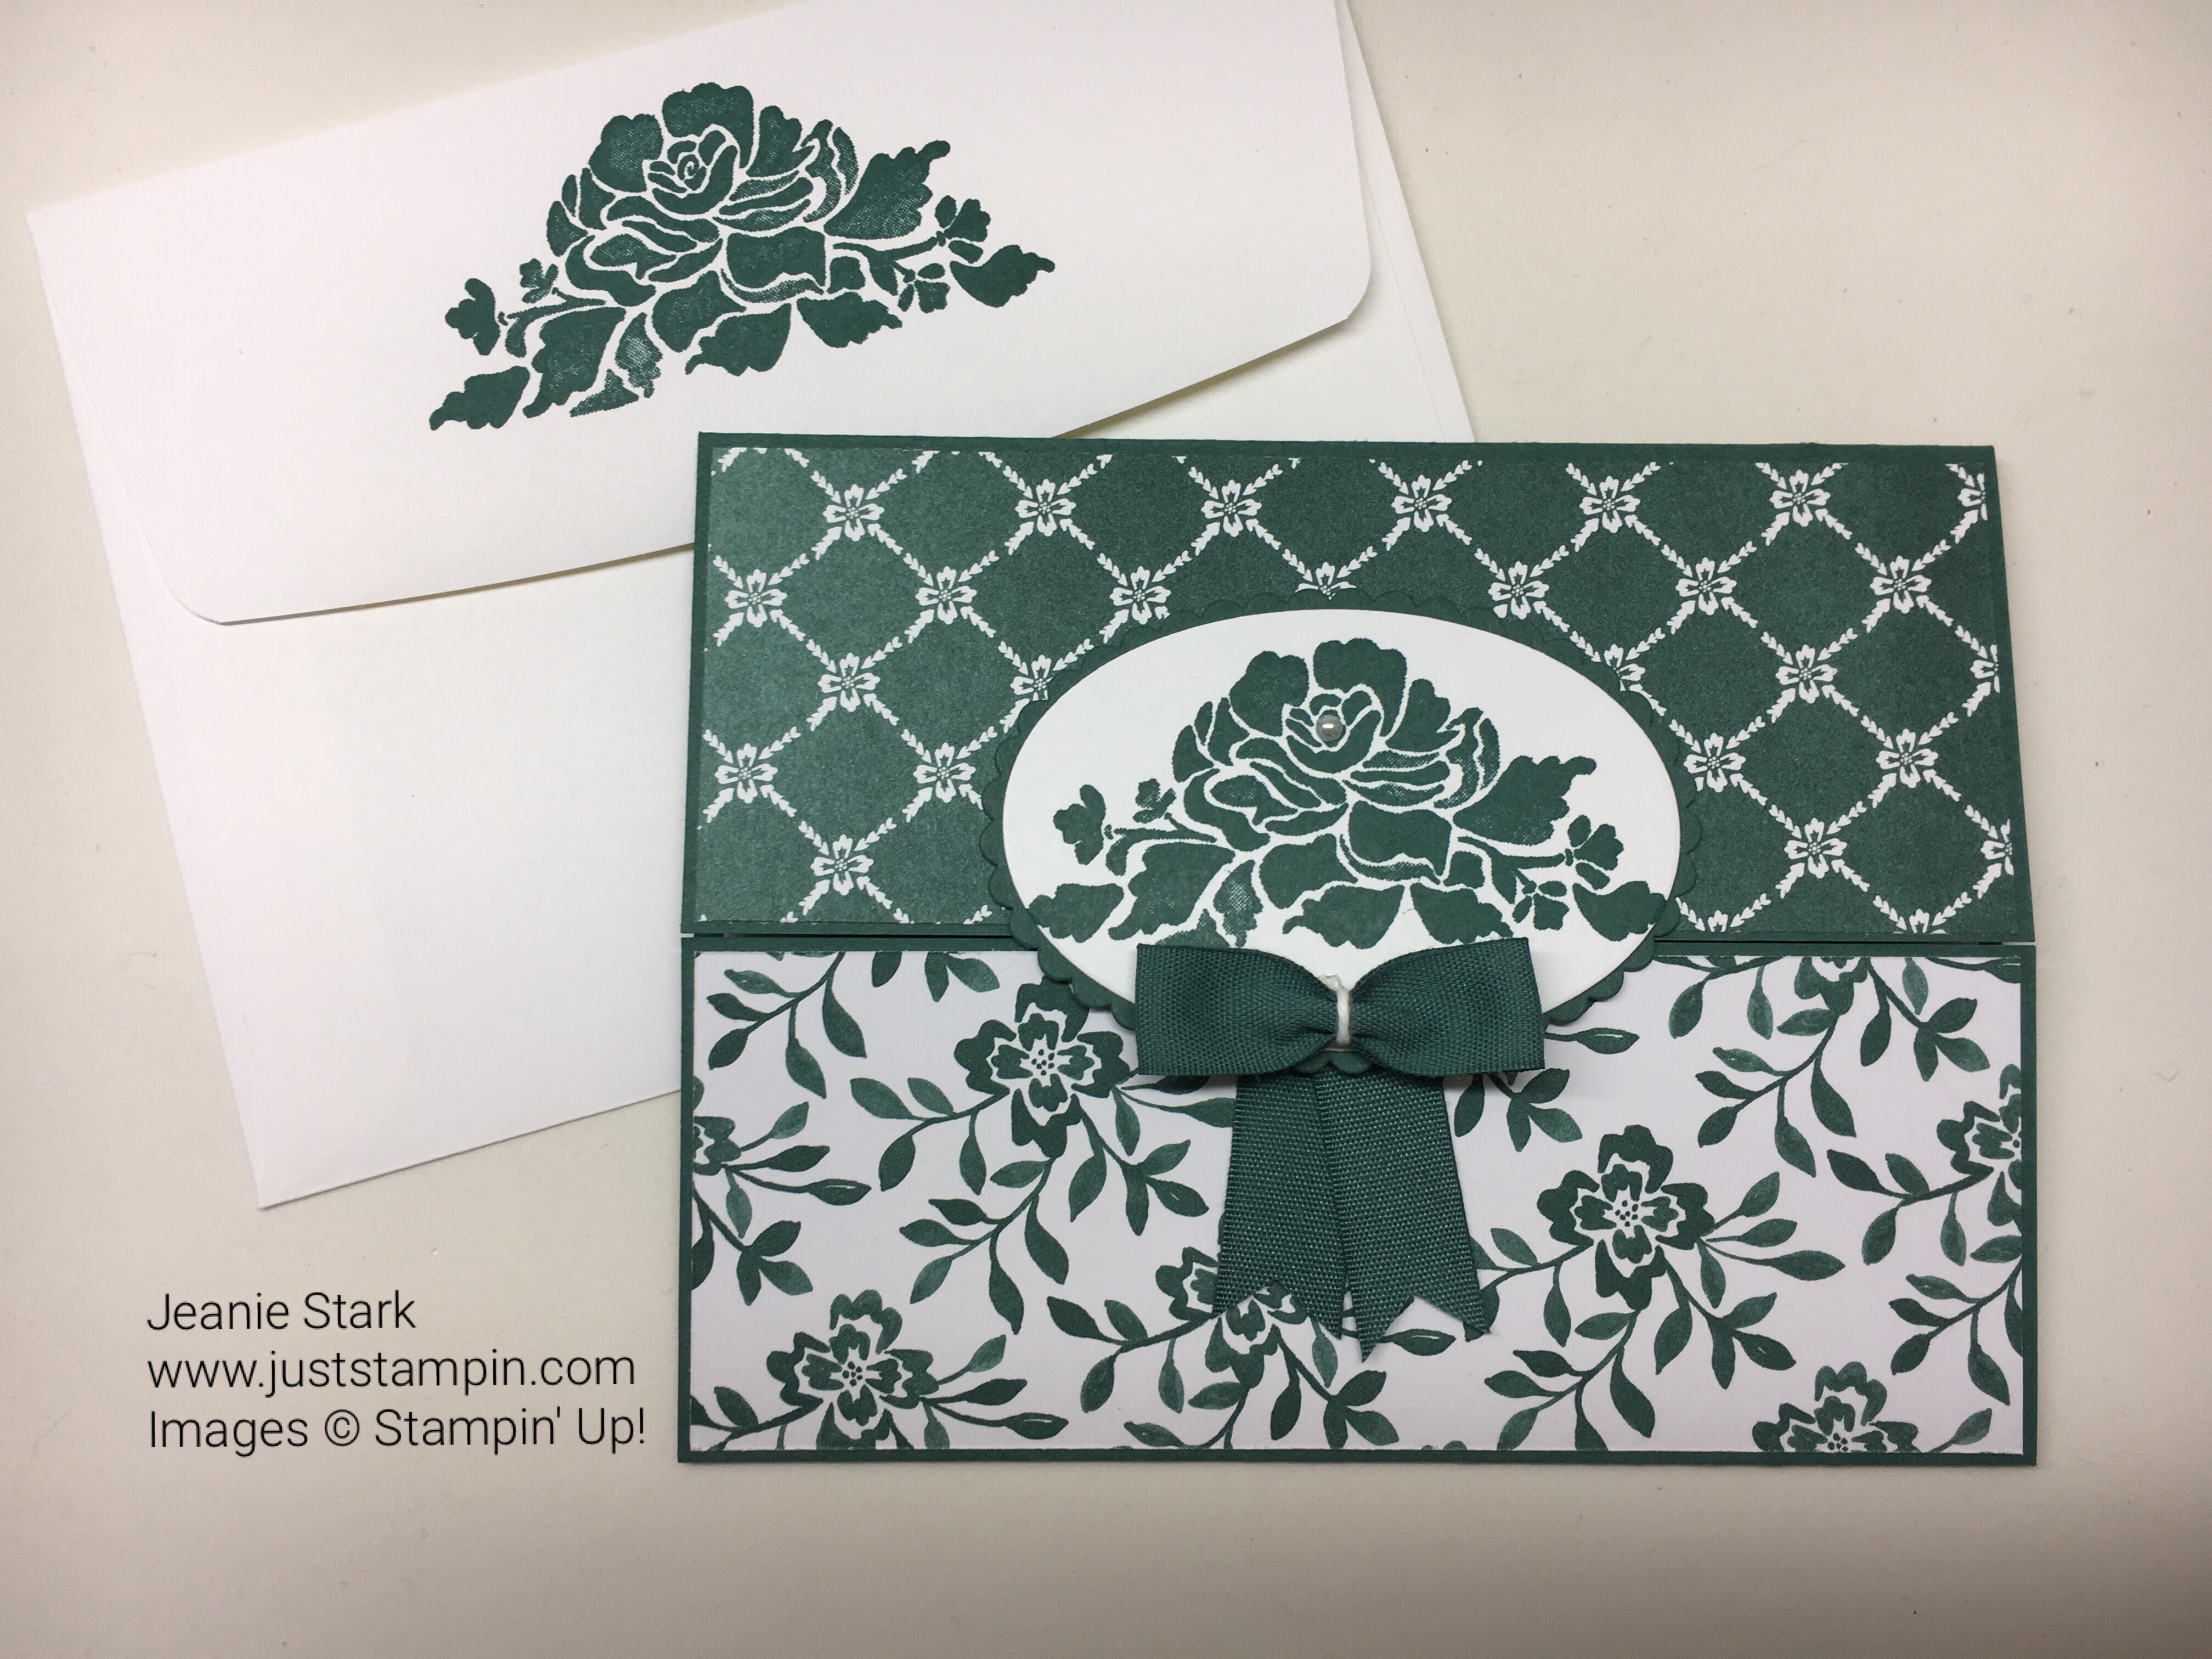 Stampin Up Floral Phrases and Fresh Florals Gate Fold thank you card idea - Jeanie Stark StampinUp